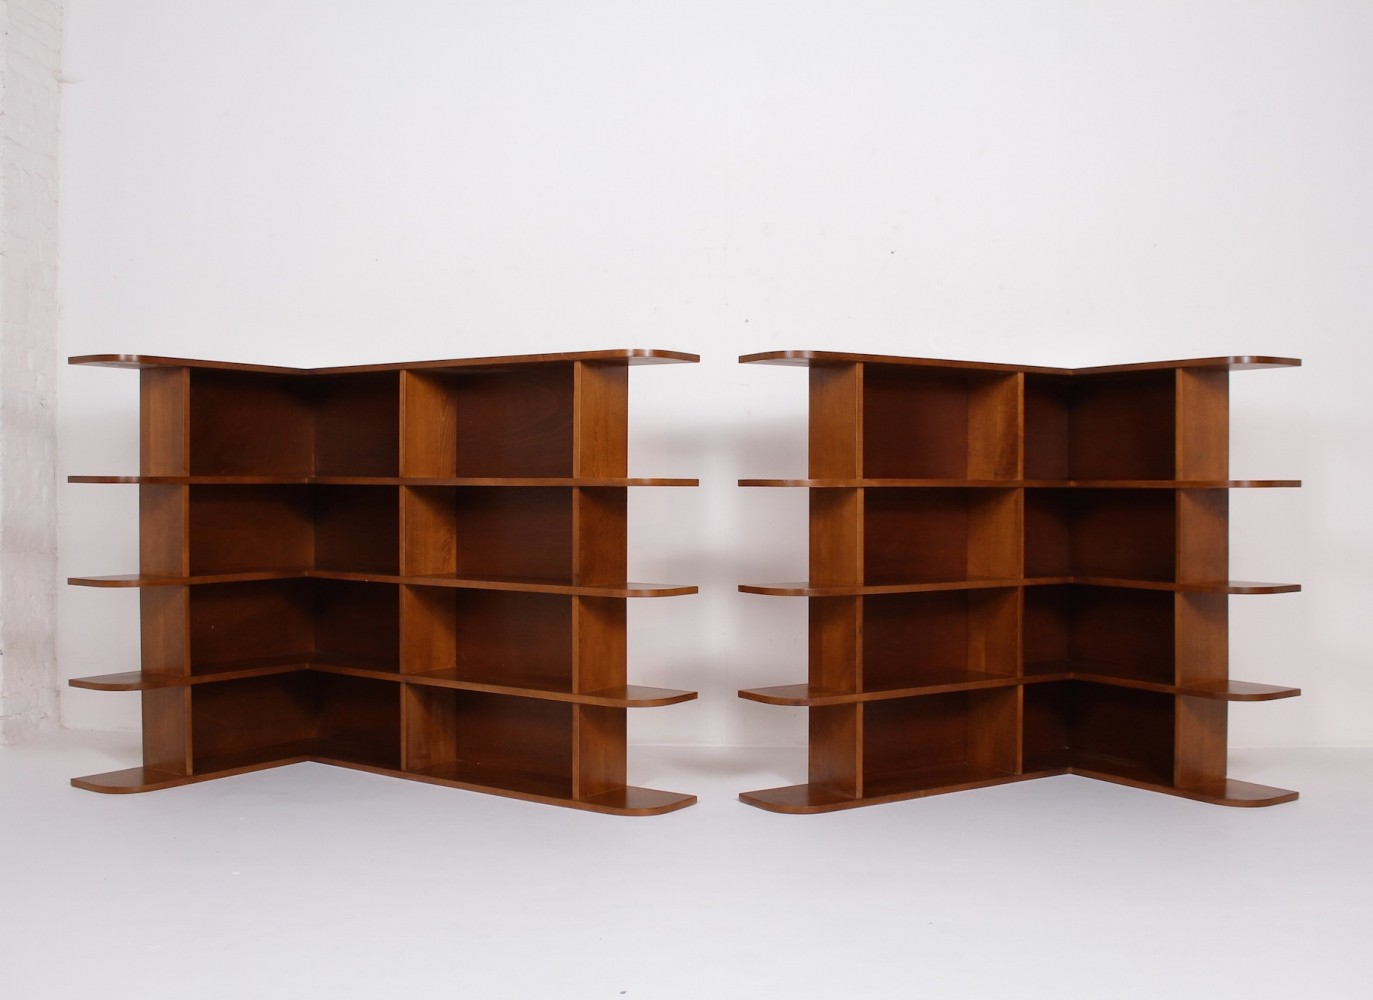 Pair of modernist French shelf units, 1940s